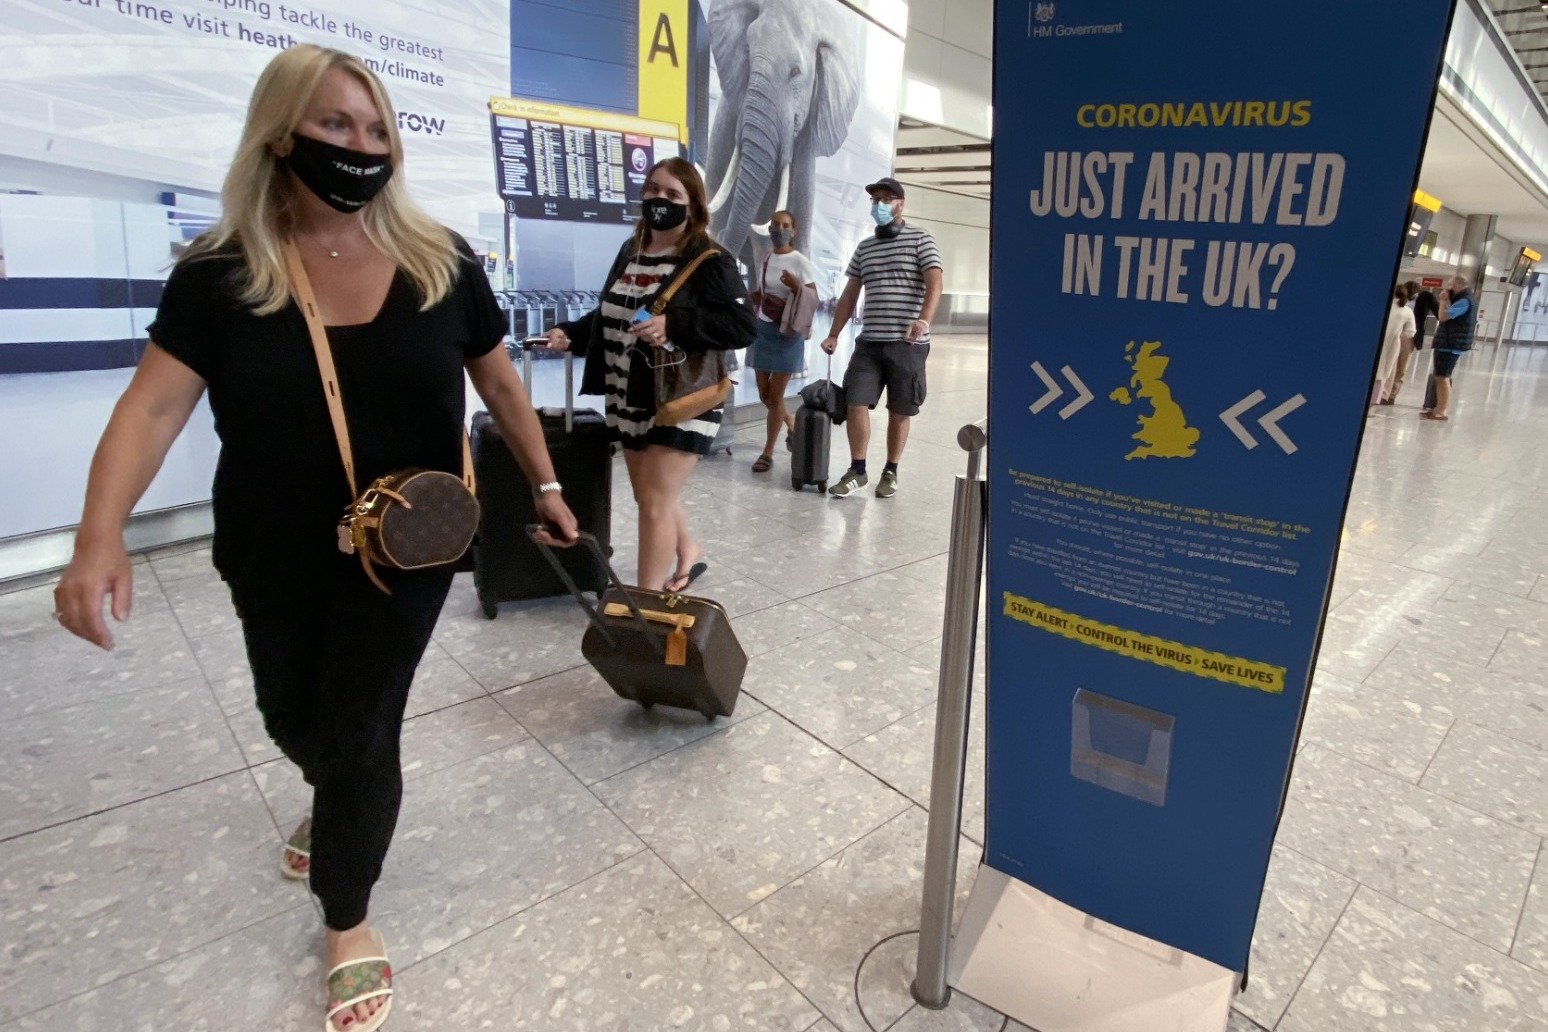 Thailand and Singapore added to quarantine-exemption list